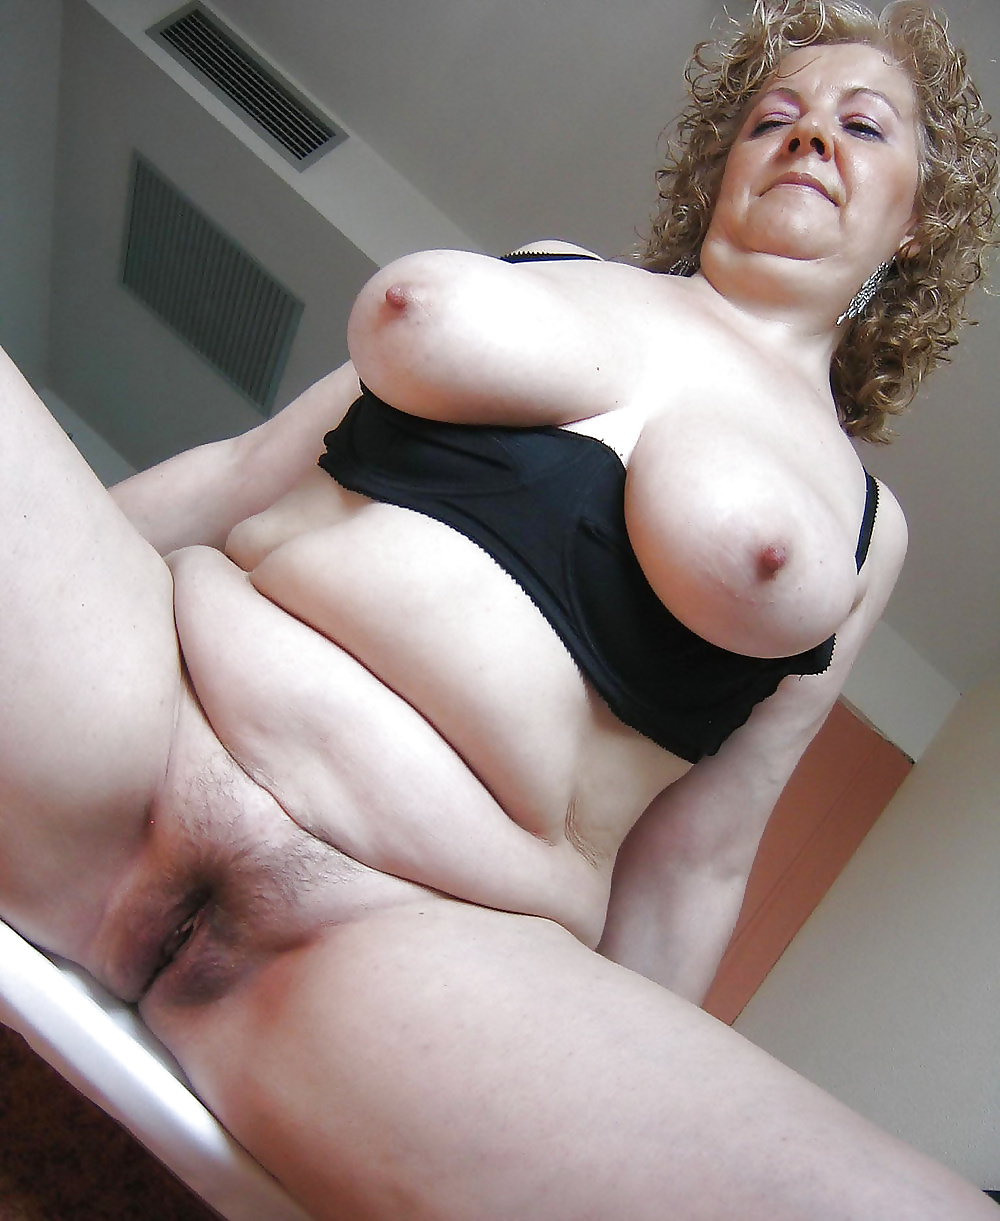 049 - Bbw Fat Chubby Big Tits Hairy Pussies Huge Panties -9626